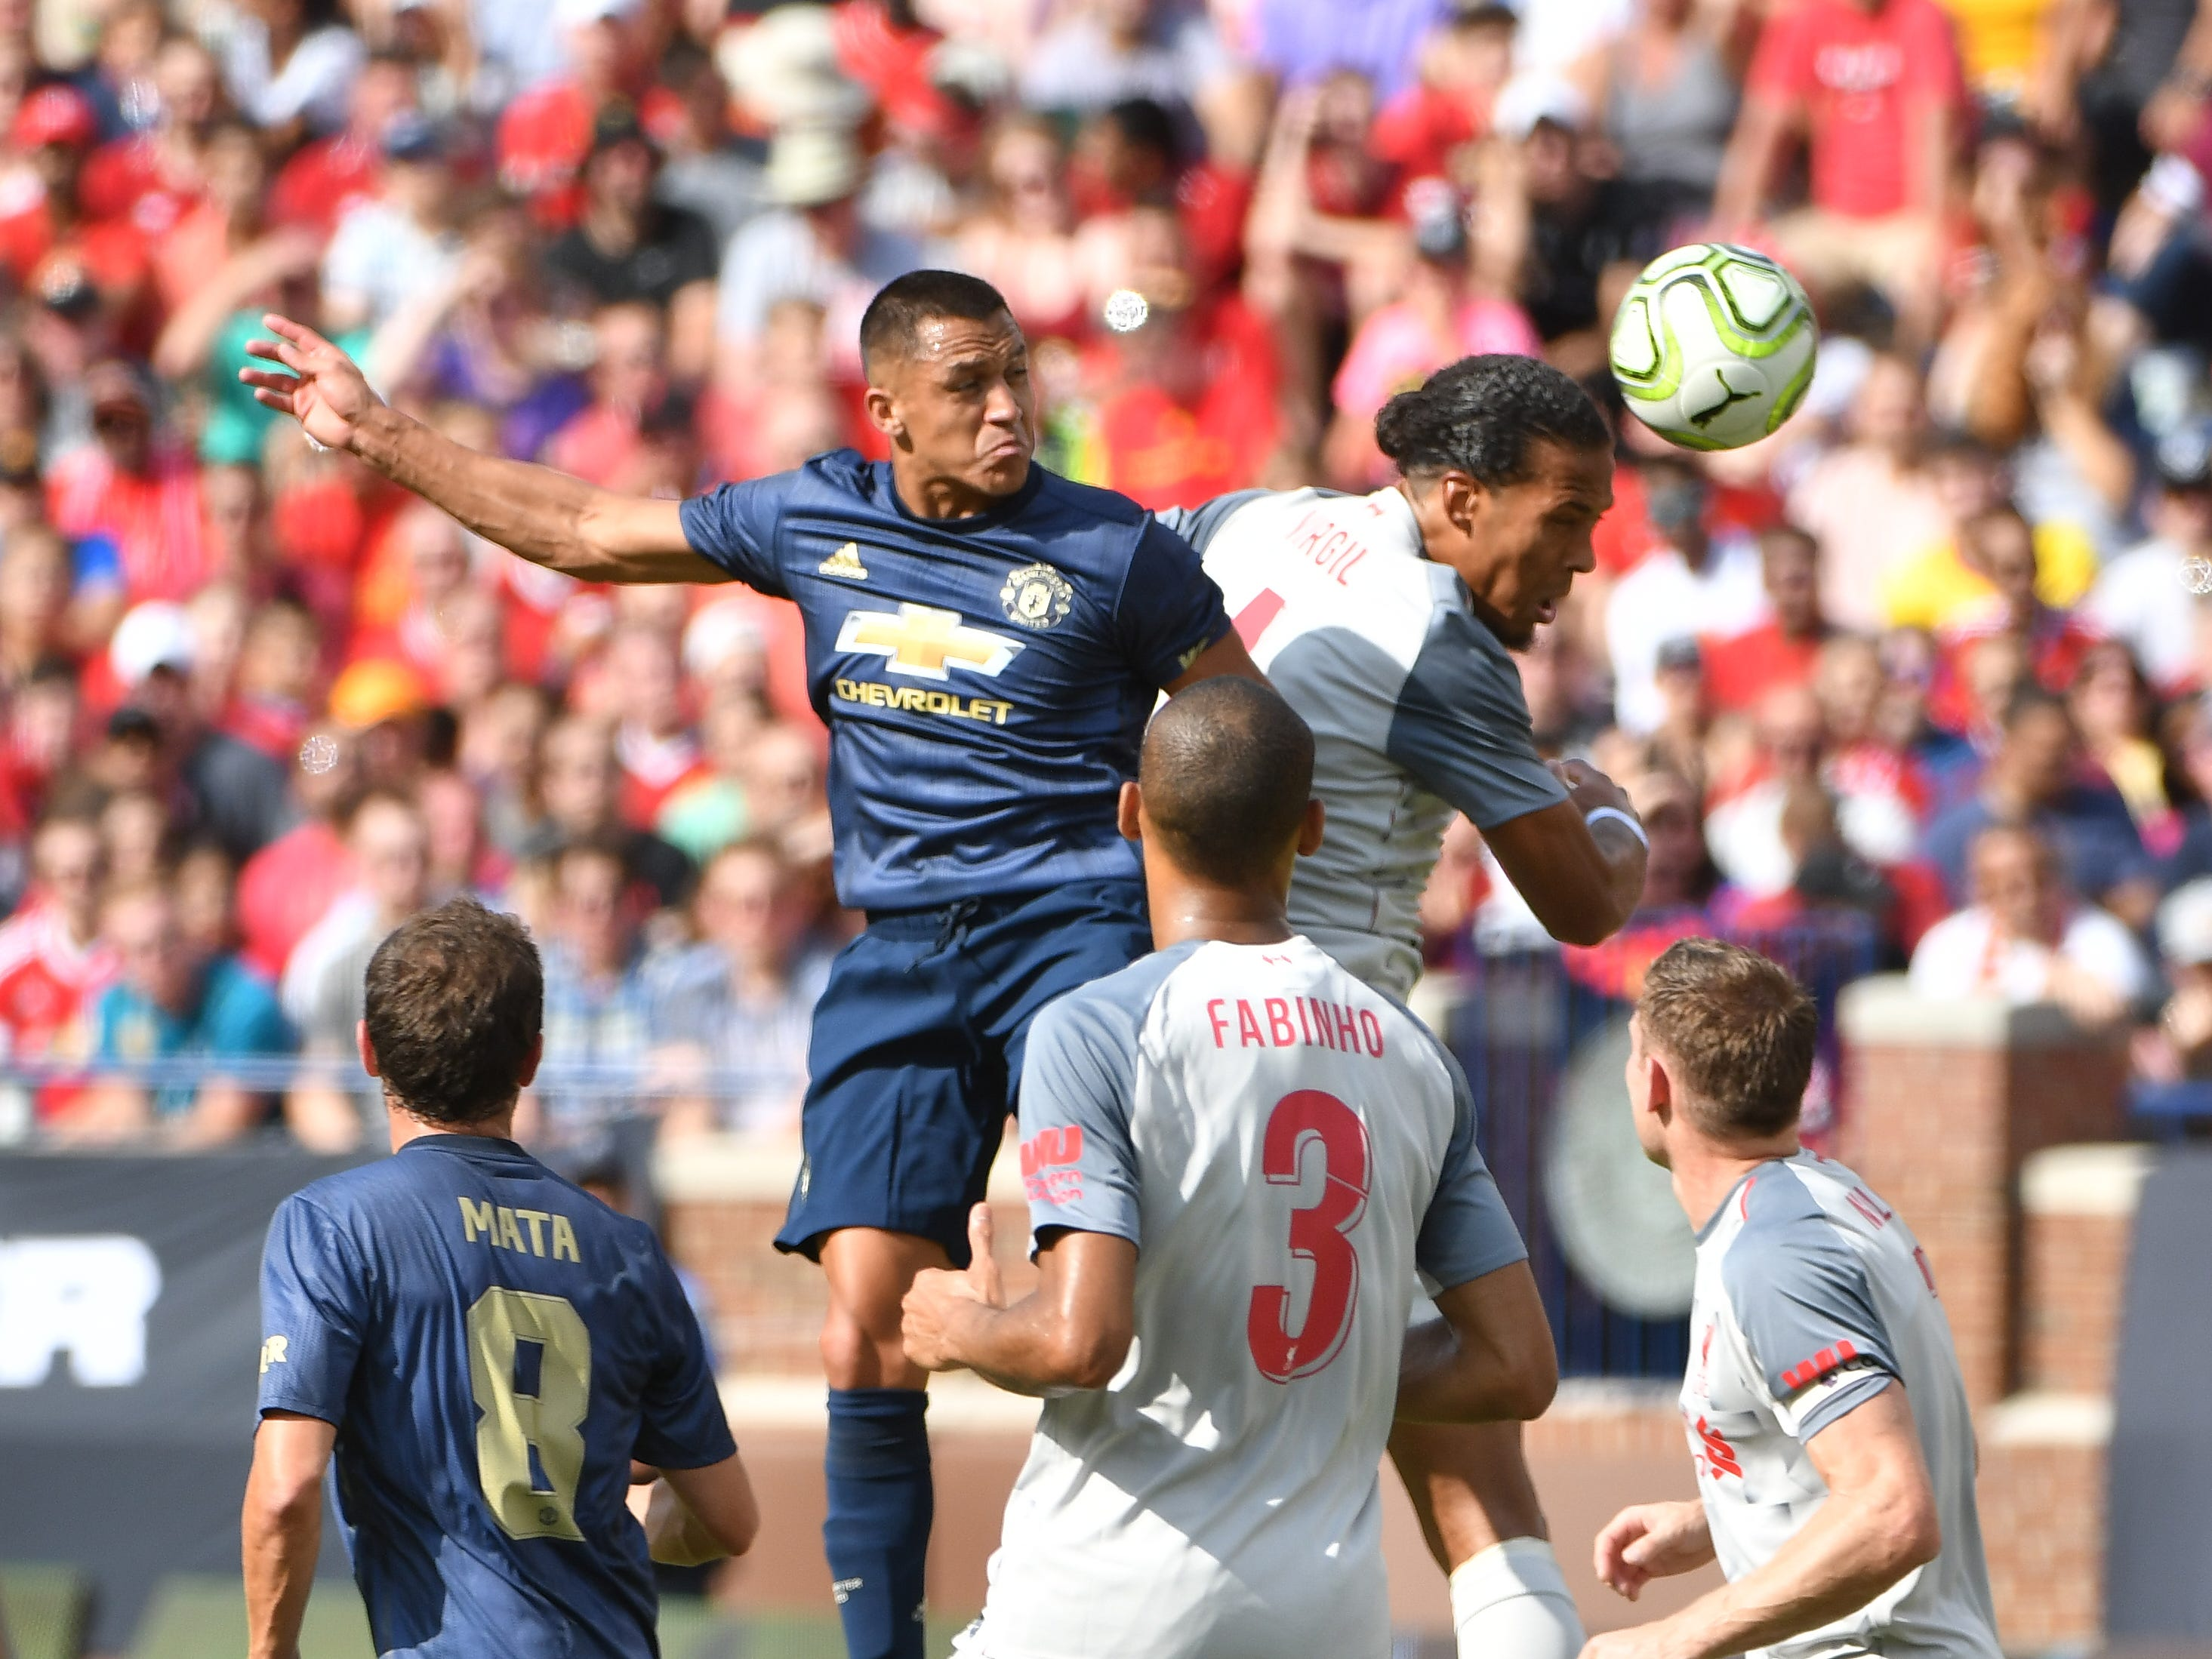 Manchester's Alexis Sanchez and Liverpool's Virgil van Diijk go up for a ball in the first half.